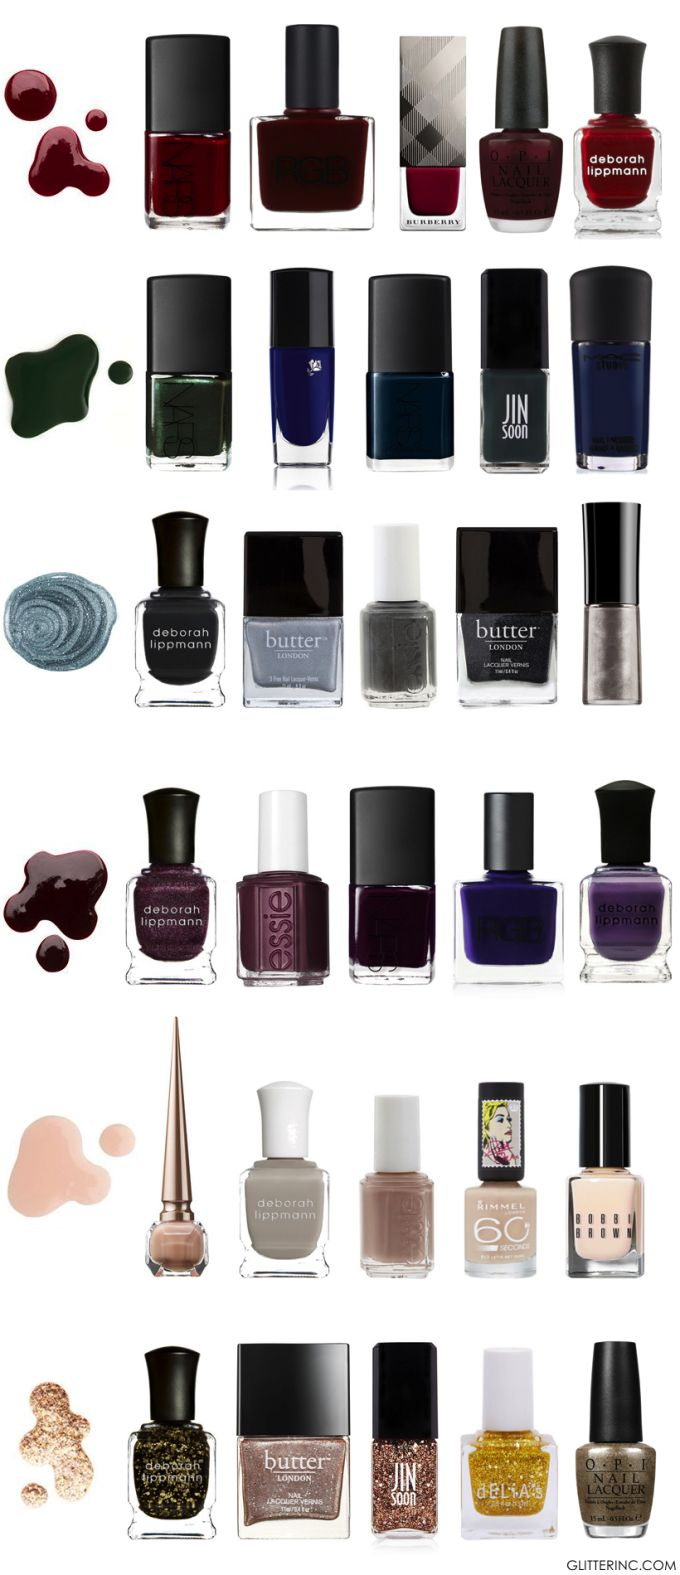 A comprehenxive guide to the very best Fall and Winter Nail Polish shades. #nails #color #beauty Click through for the details.  | glitterinc.com | @glitterinc